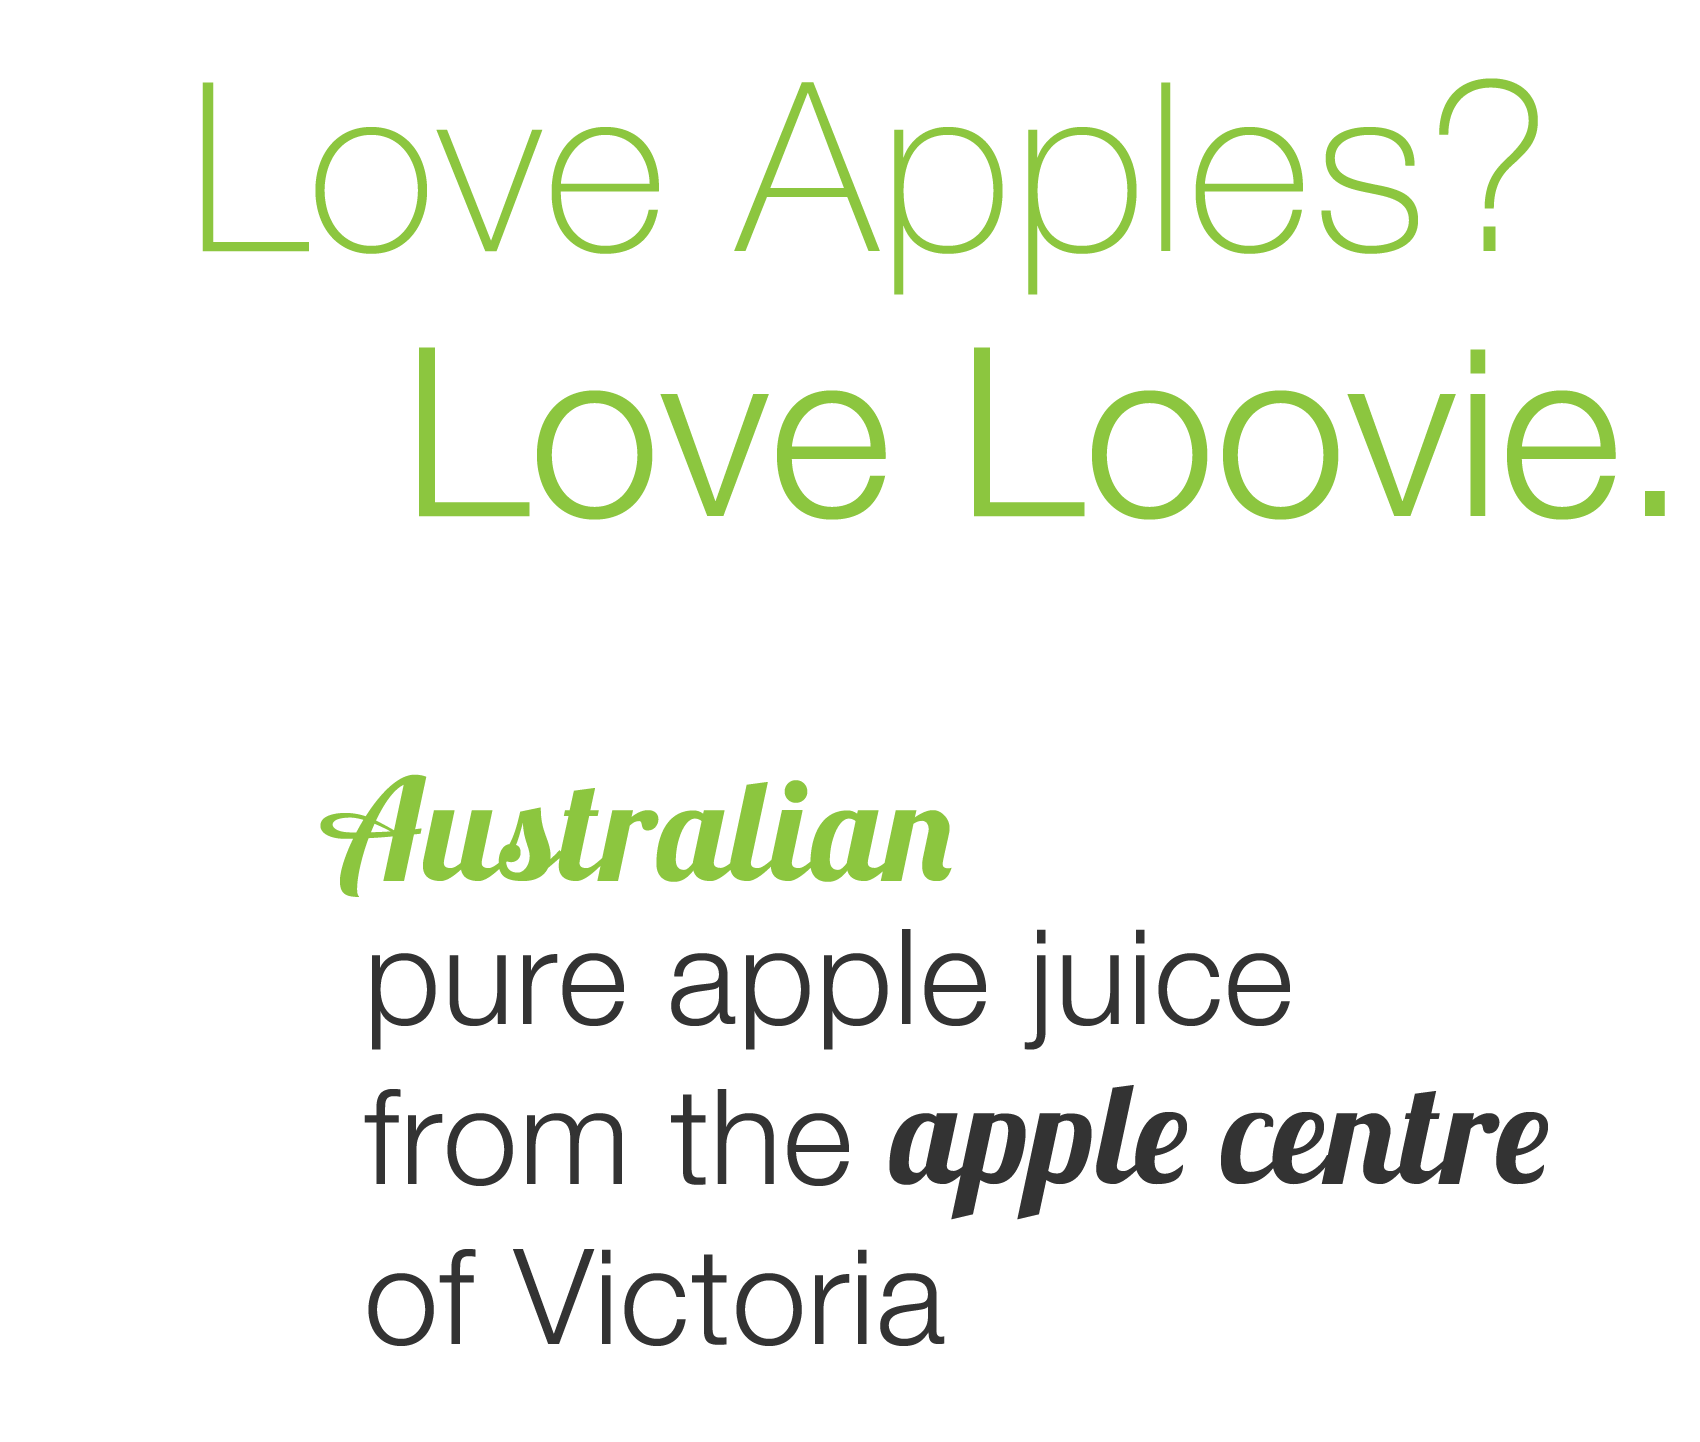 Love Apples? Love Loovie.